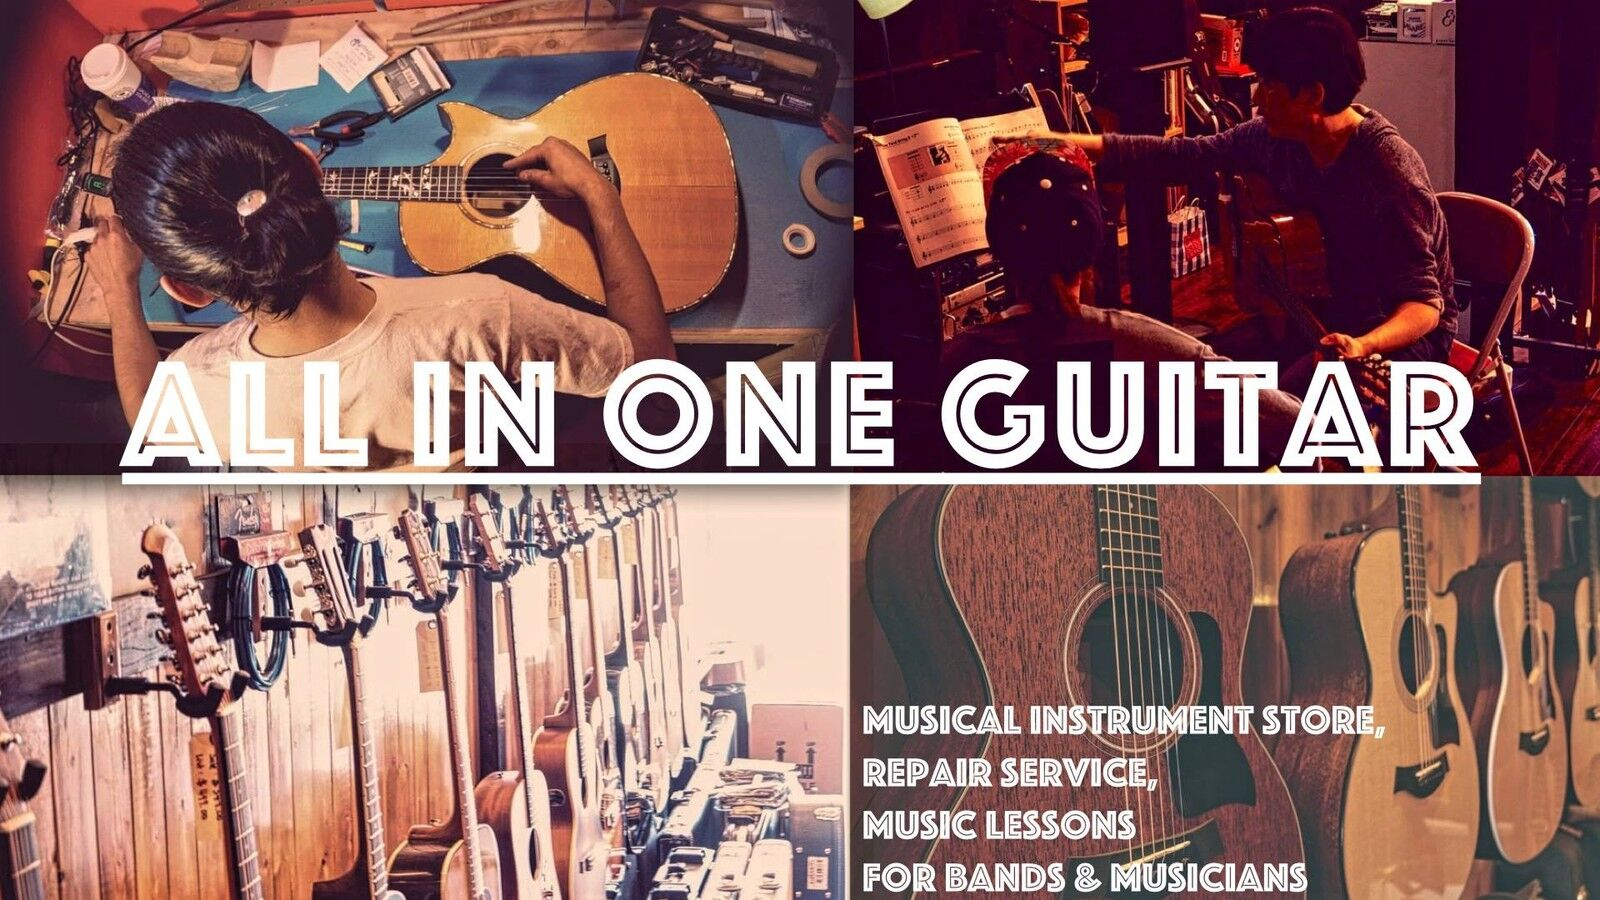 All-in-One Guitars